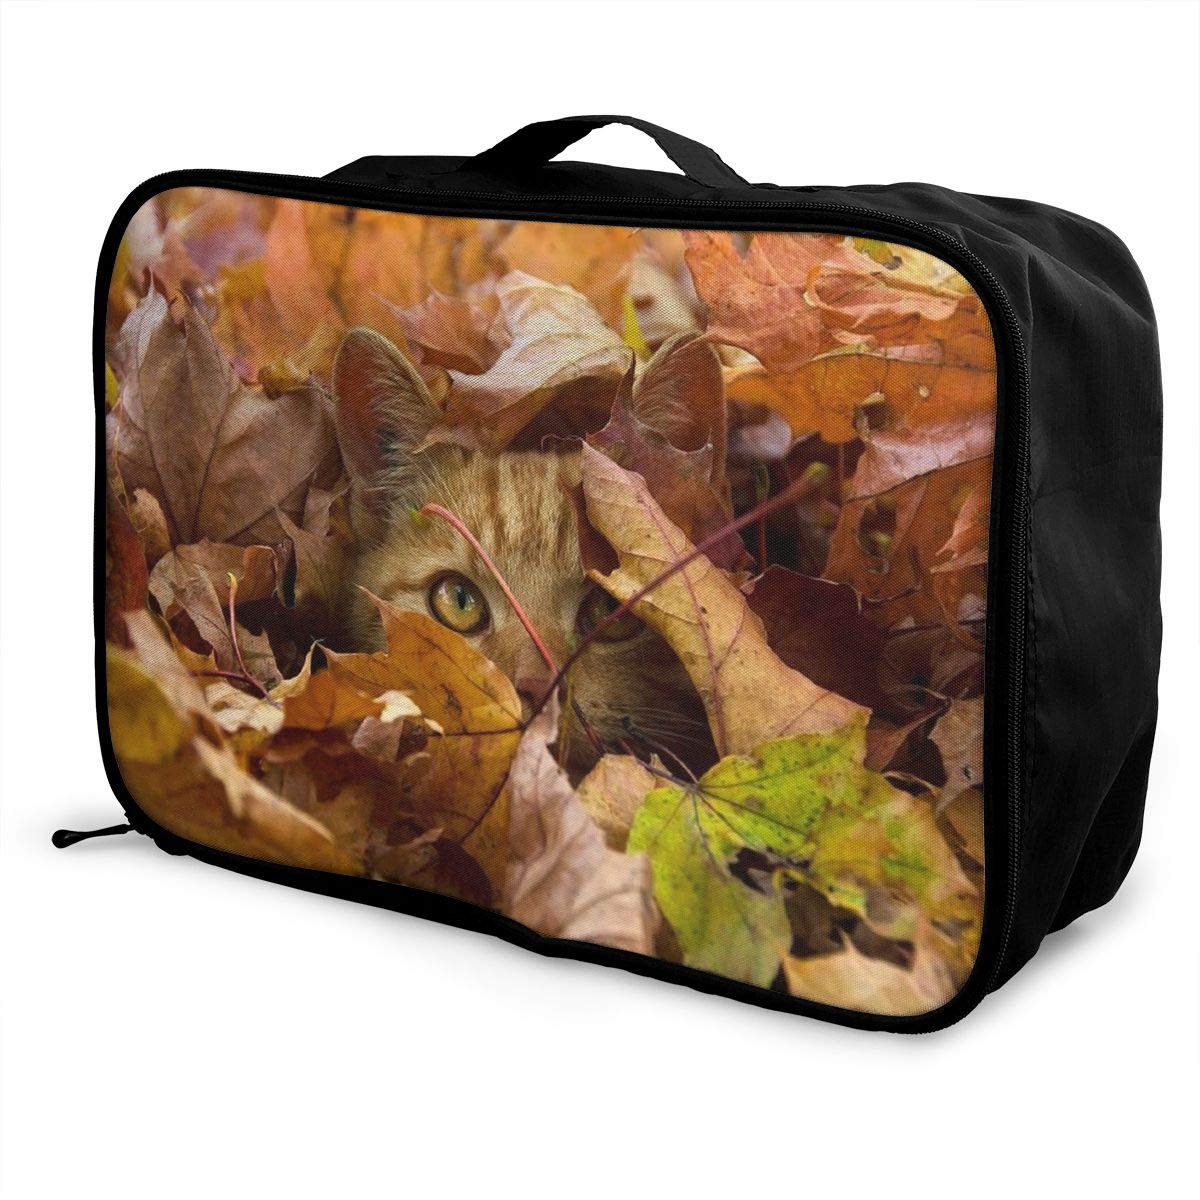 Travel Luggage Duffle Bag Lightweight Portable Handbag Animal Cat Leaves Pattern Large Capacity Waterproof Foldable Storage Tote